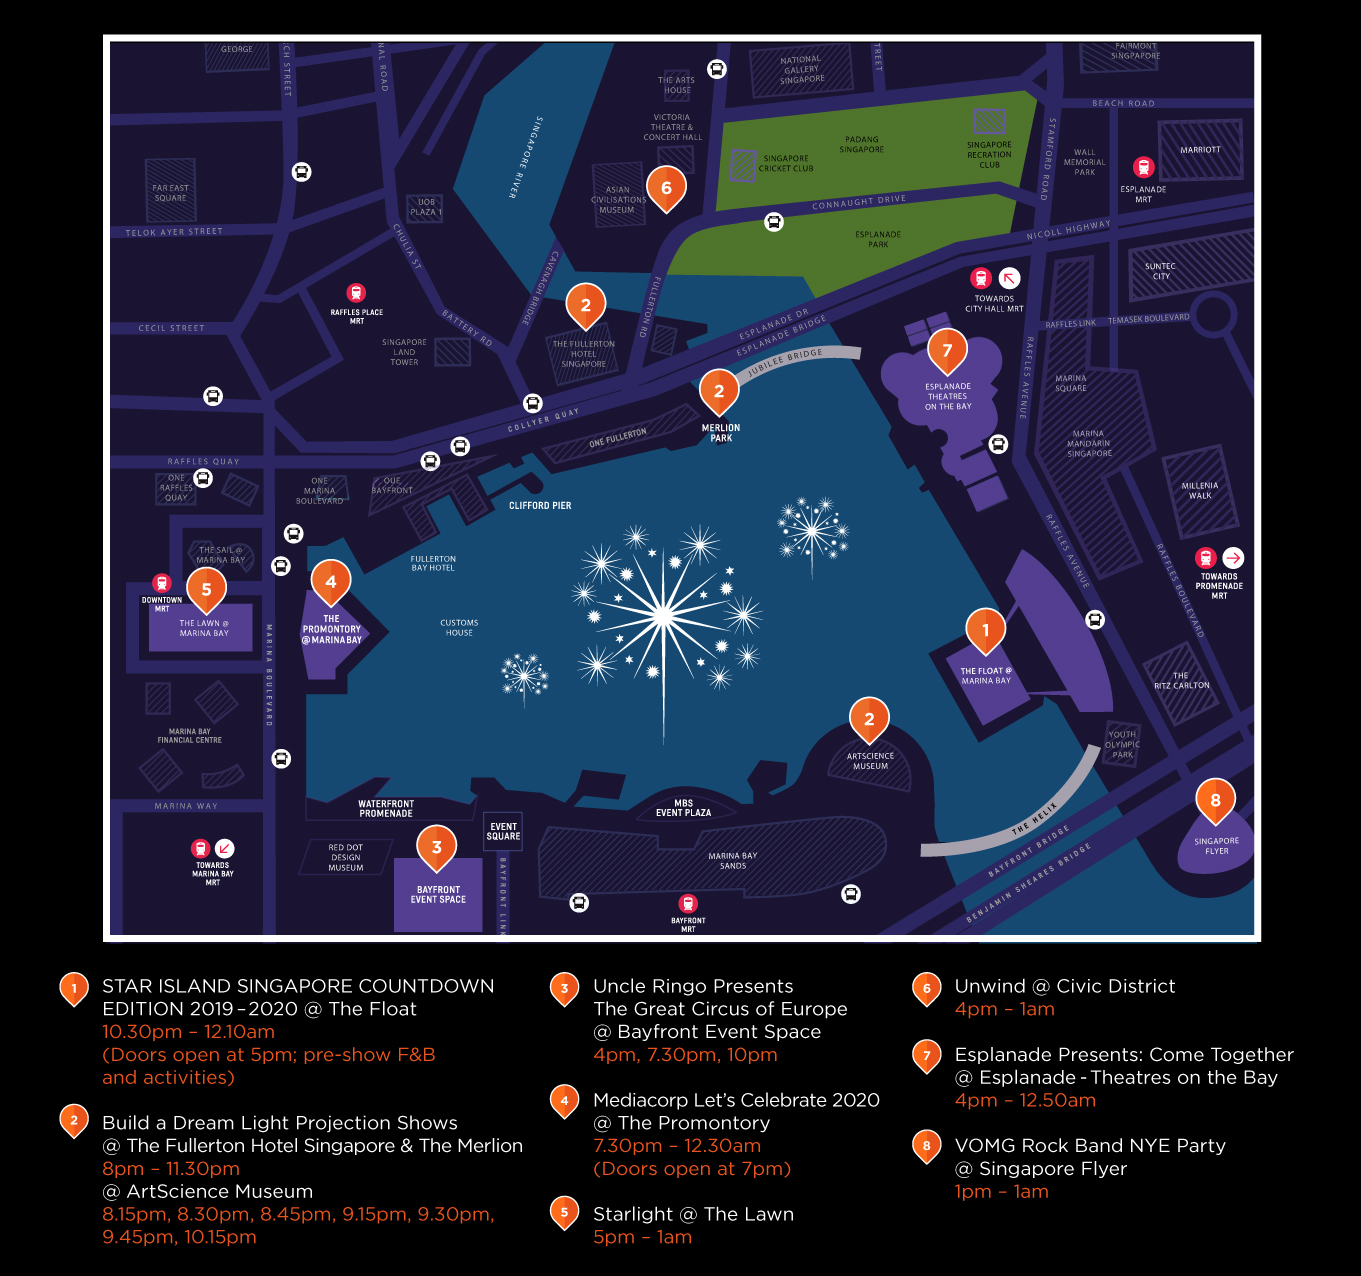 Map of activities around Marina Bay and the Civic District in preparation for countdown 2020.